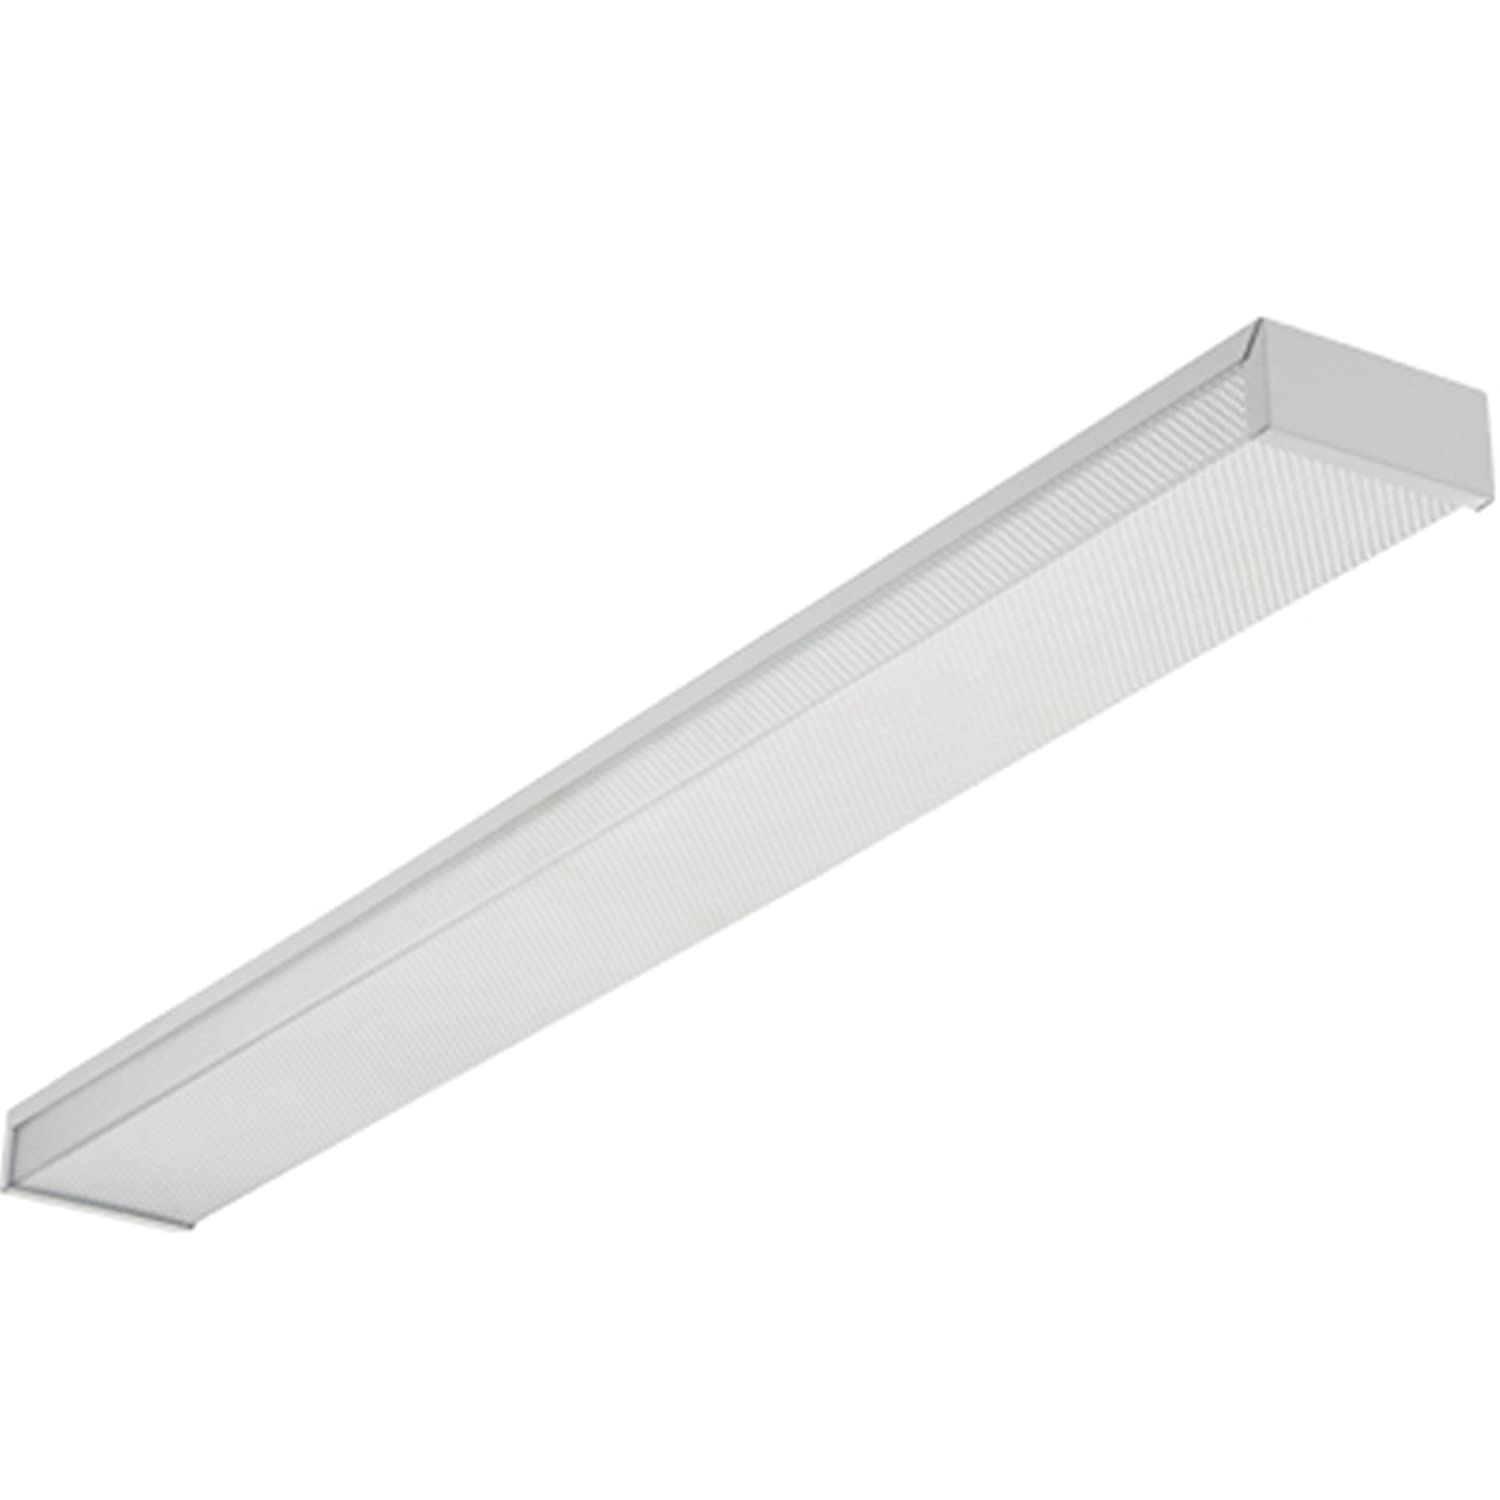 61bNBFB01UL._SL1500_ close to ceiling light fixtures amazon com lighting & ceiling  at readyjetset.co